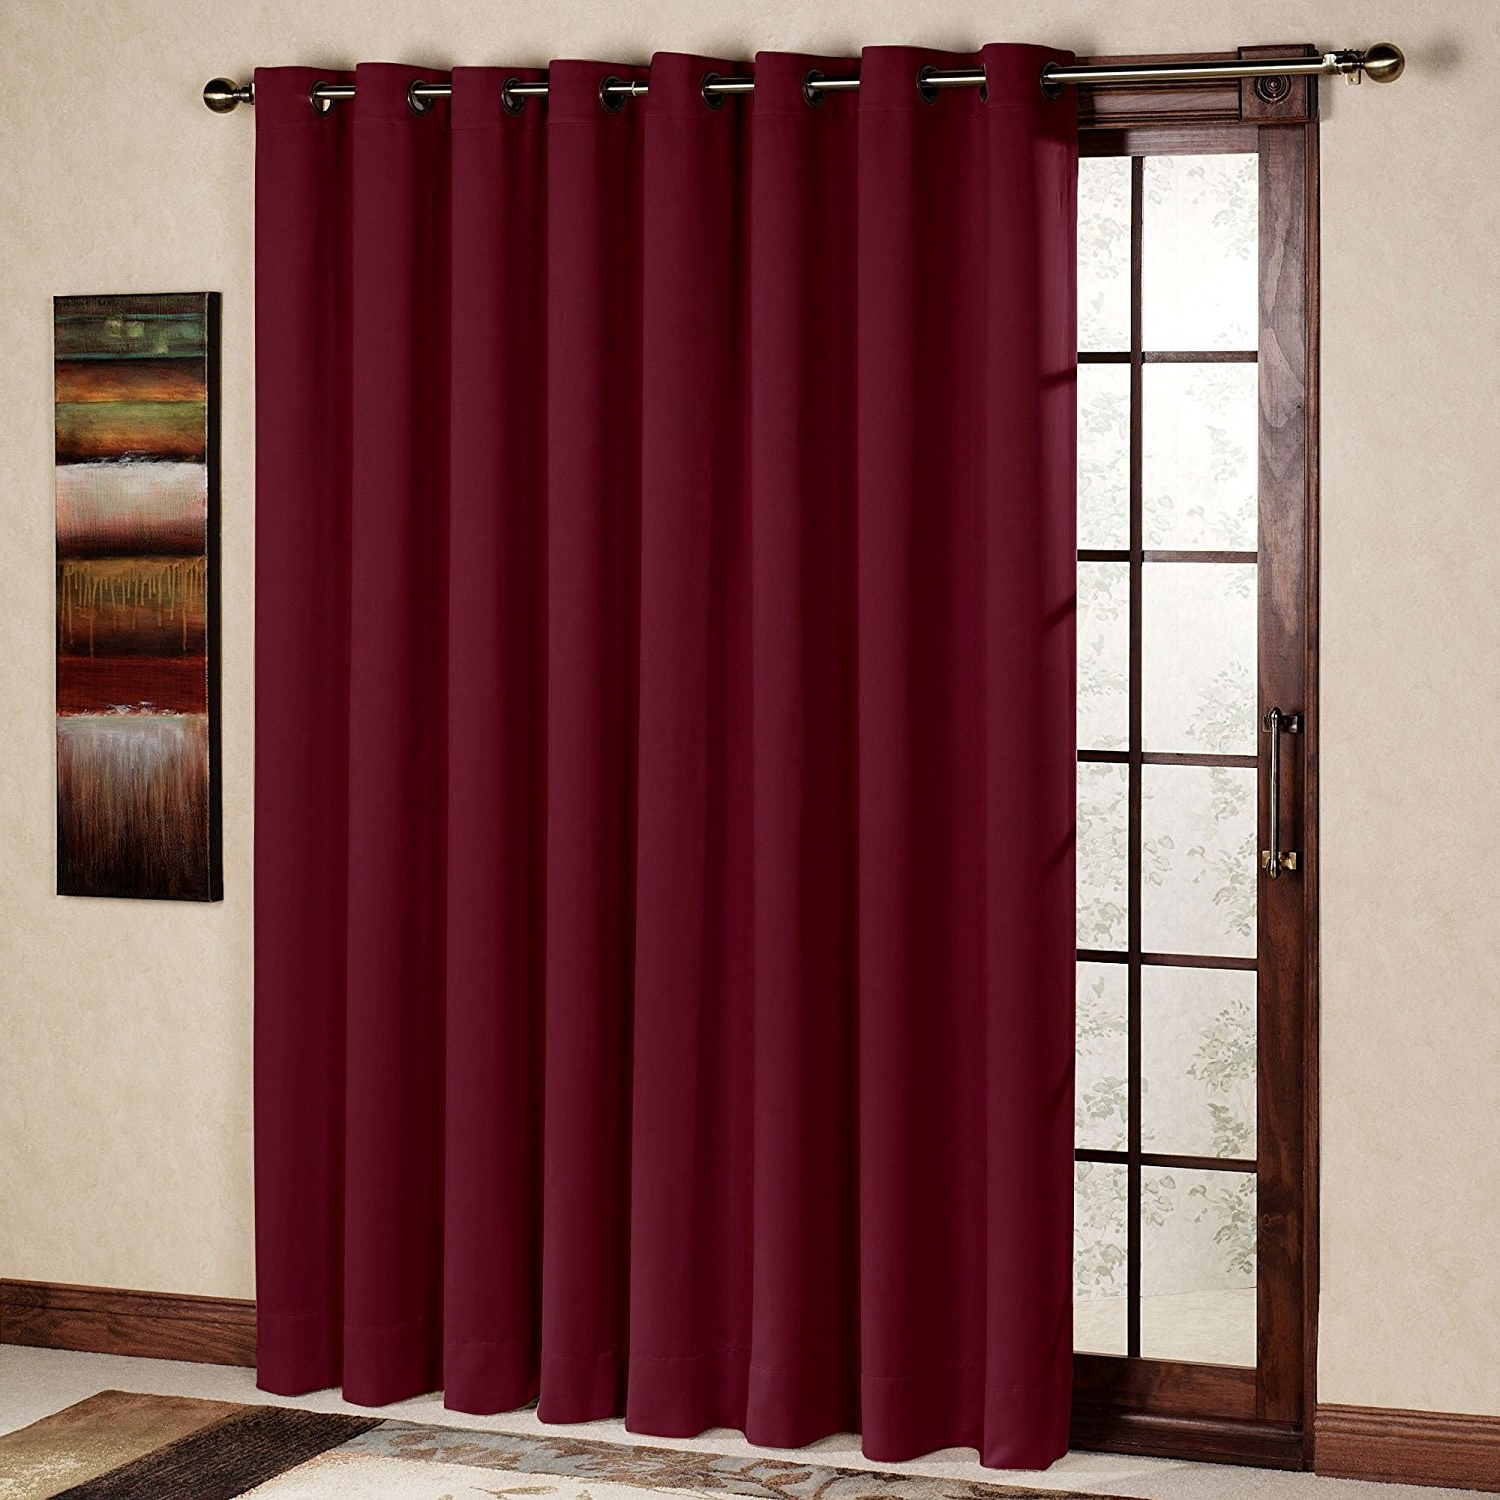 Well Known Rhf Wide Thermal Blackout Patio Door Curtain Panel, Sliding Inside Grommet Blackout Patio Door Window Curtain Panels (View 10 of 20)